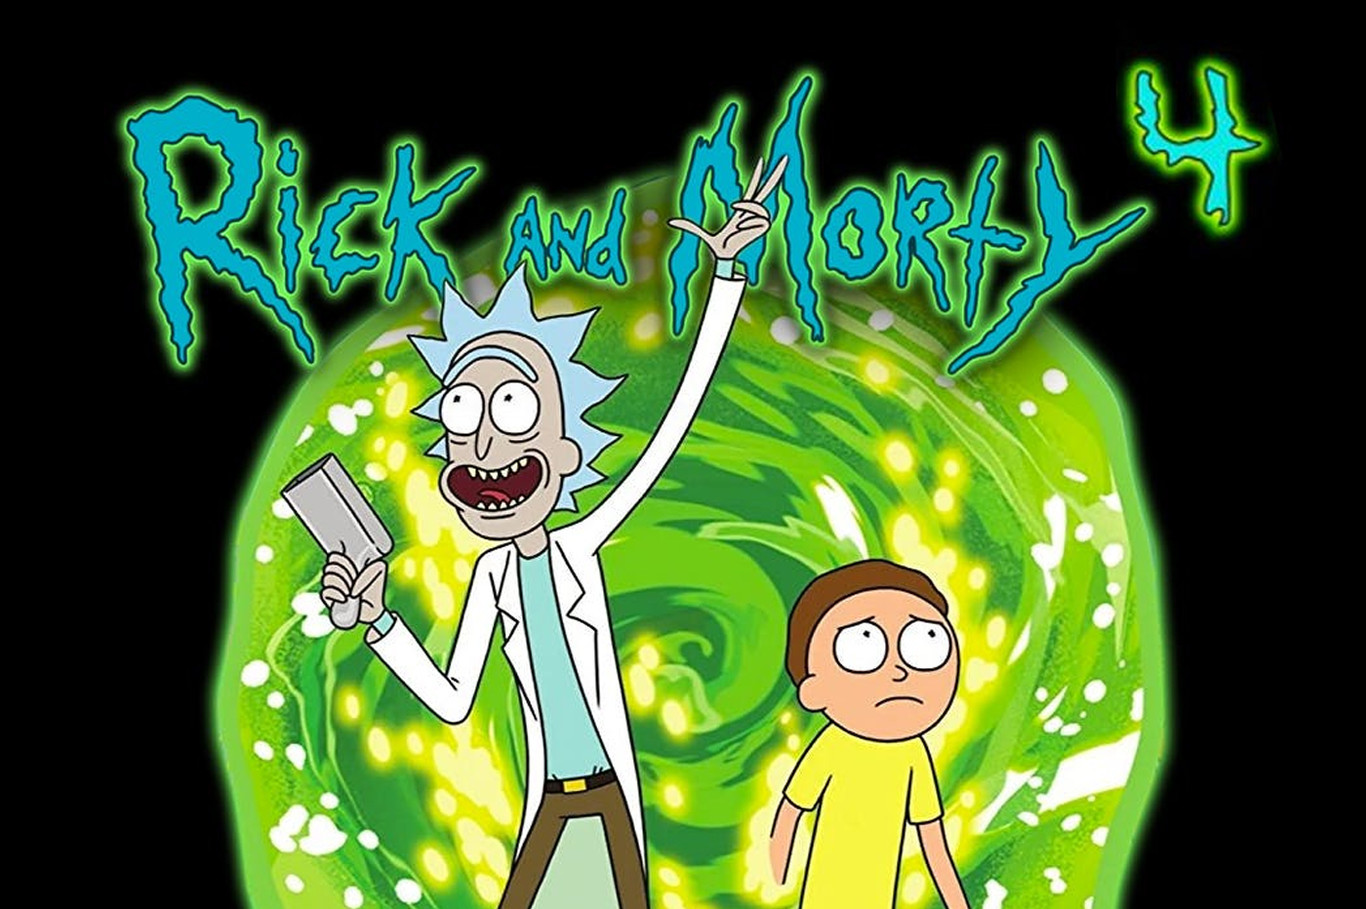 Temporada 4 de Rick y Morty